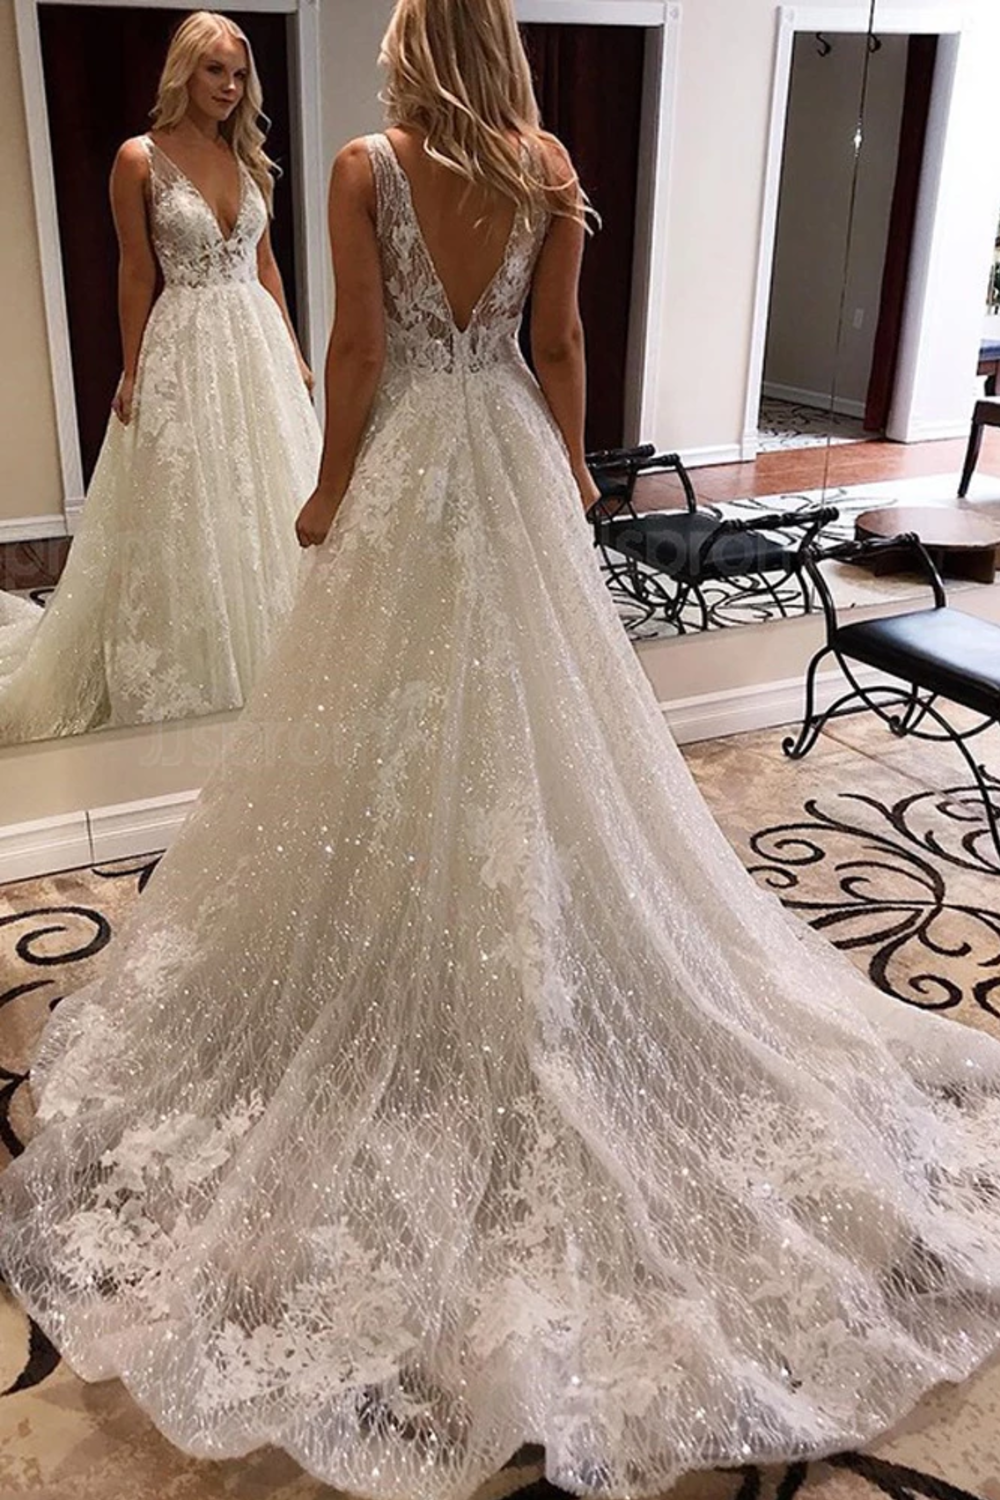 Luxurious Ball Gown V Neck Open Back Ivory Lace Wedding Dresses Sequins Beach Bridal Dresses Us 379 00 Eqpffa9dl6 Ellepoques Co Uk In 2020 Sparkle Wedding Dress Wedding Dress Sequin Elegant Bridal Gown